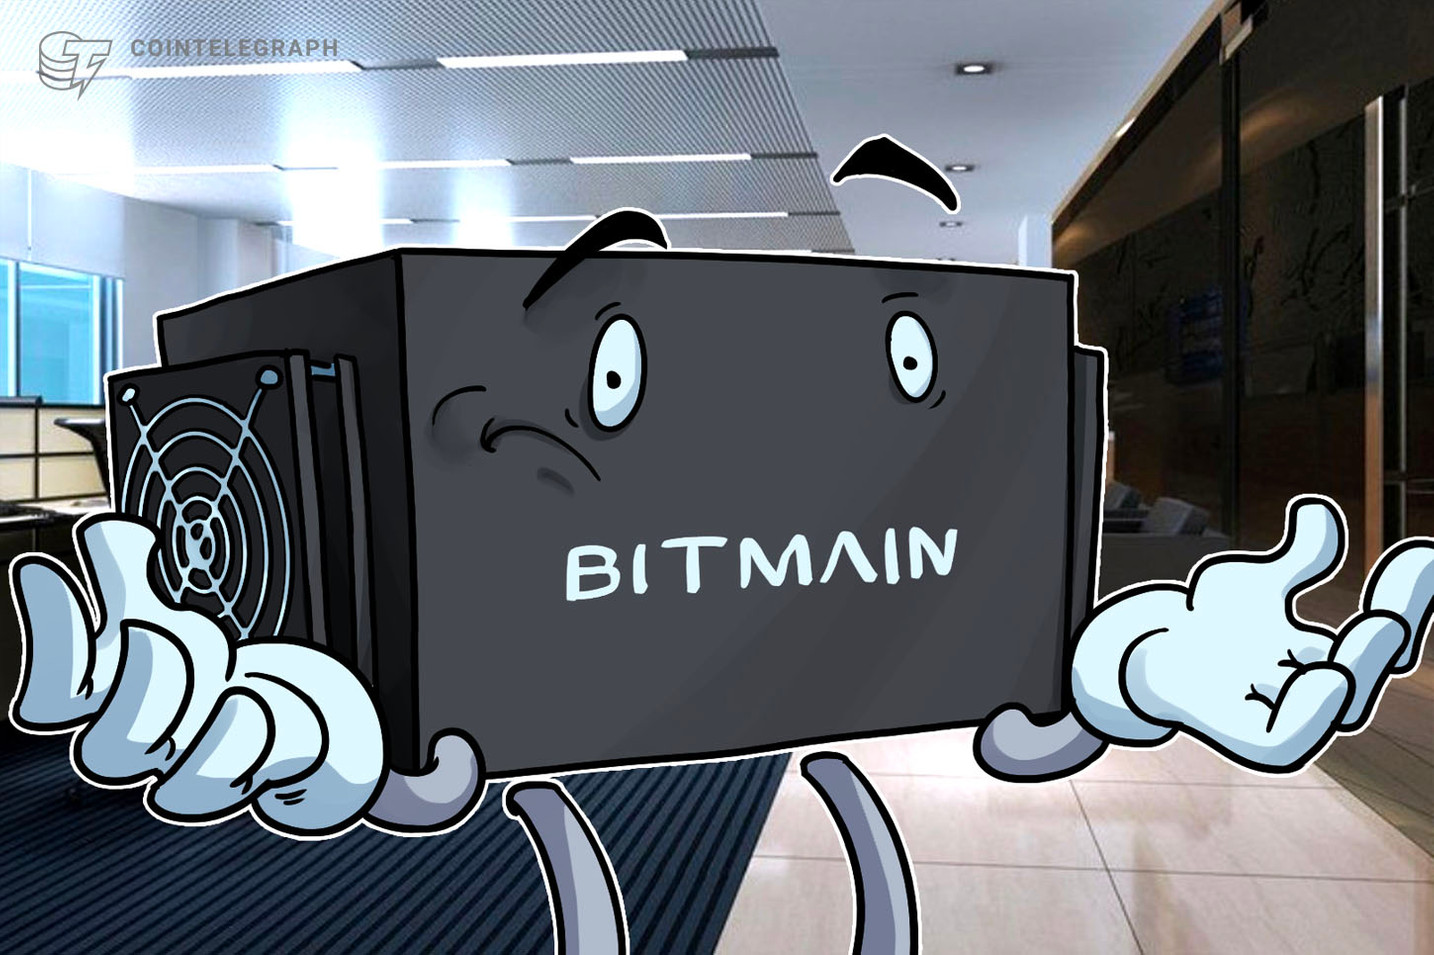 Bitmain Accuses Cryptocurrency Project of Impersonation